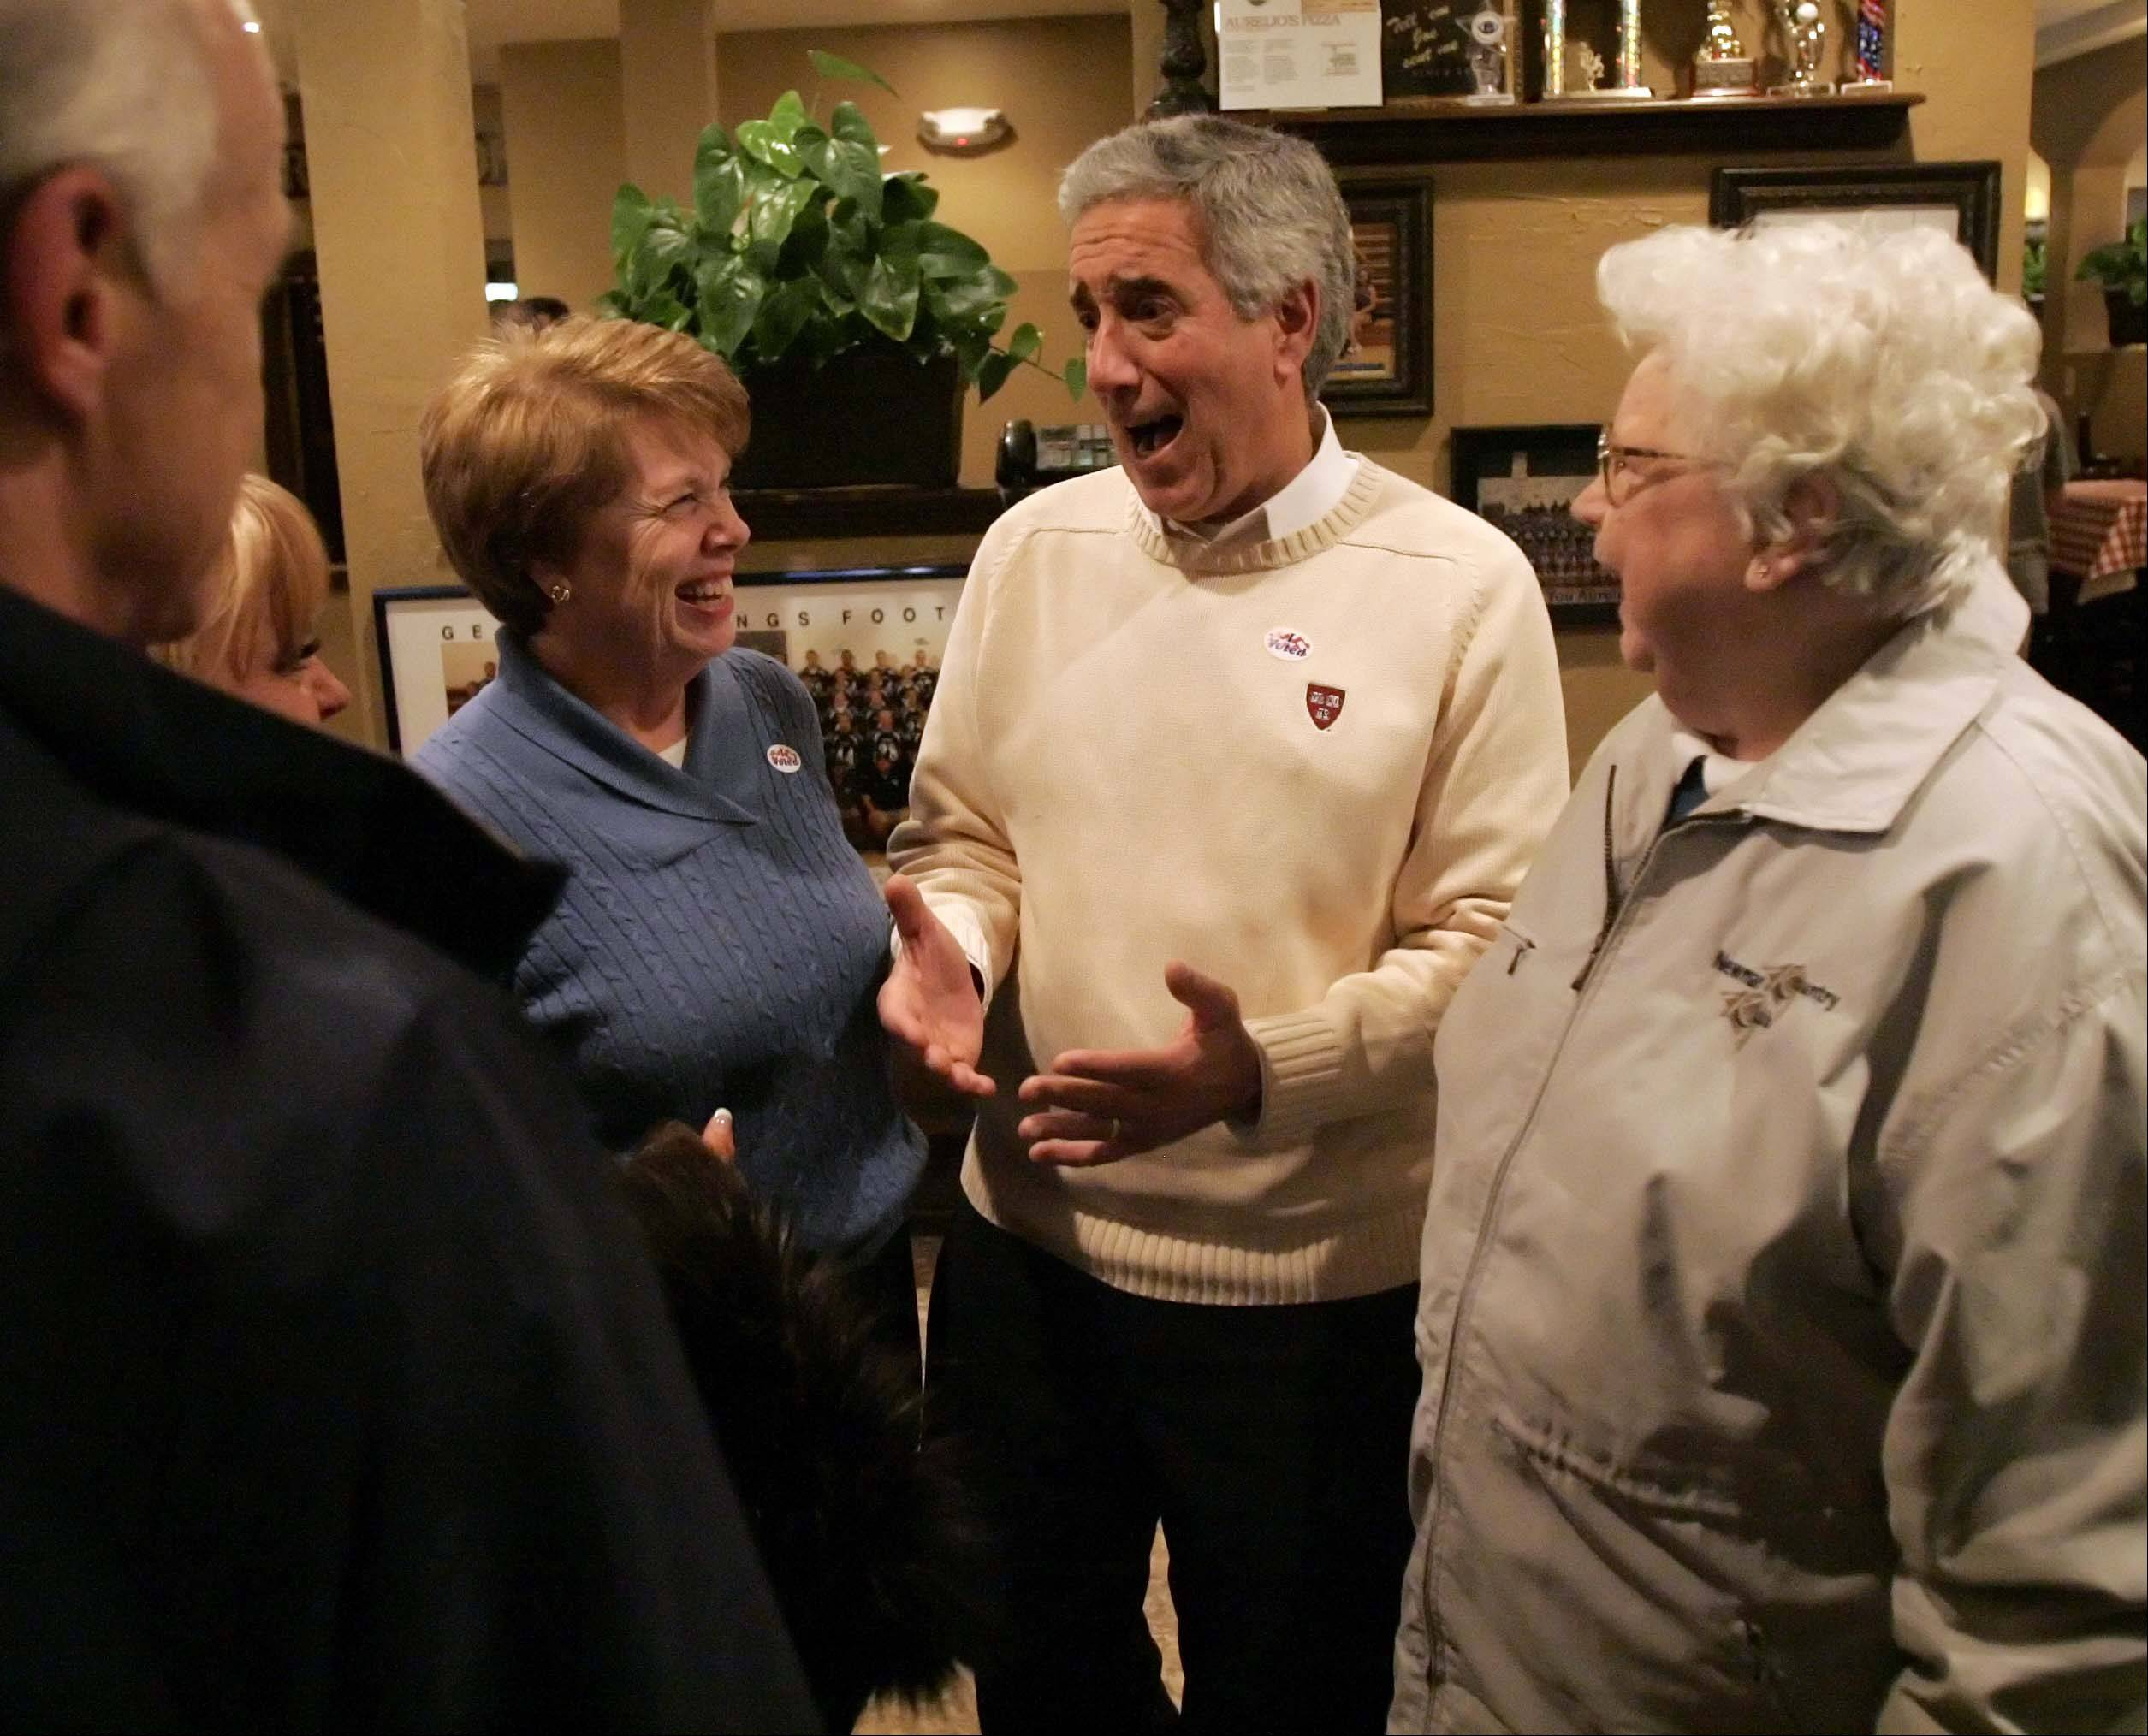 Kane County Board Chair candidate Chris Lauzen speaks with his wife Sarah, left. Katie and Robin Lawson, of Elburn, foreground left, and Donna Neely of Elburn also attended the election night party at Aurelio's Pizza in Geneva.